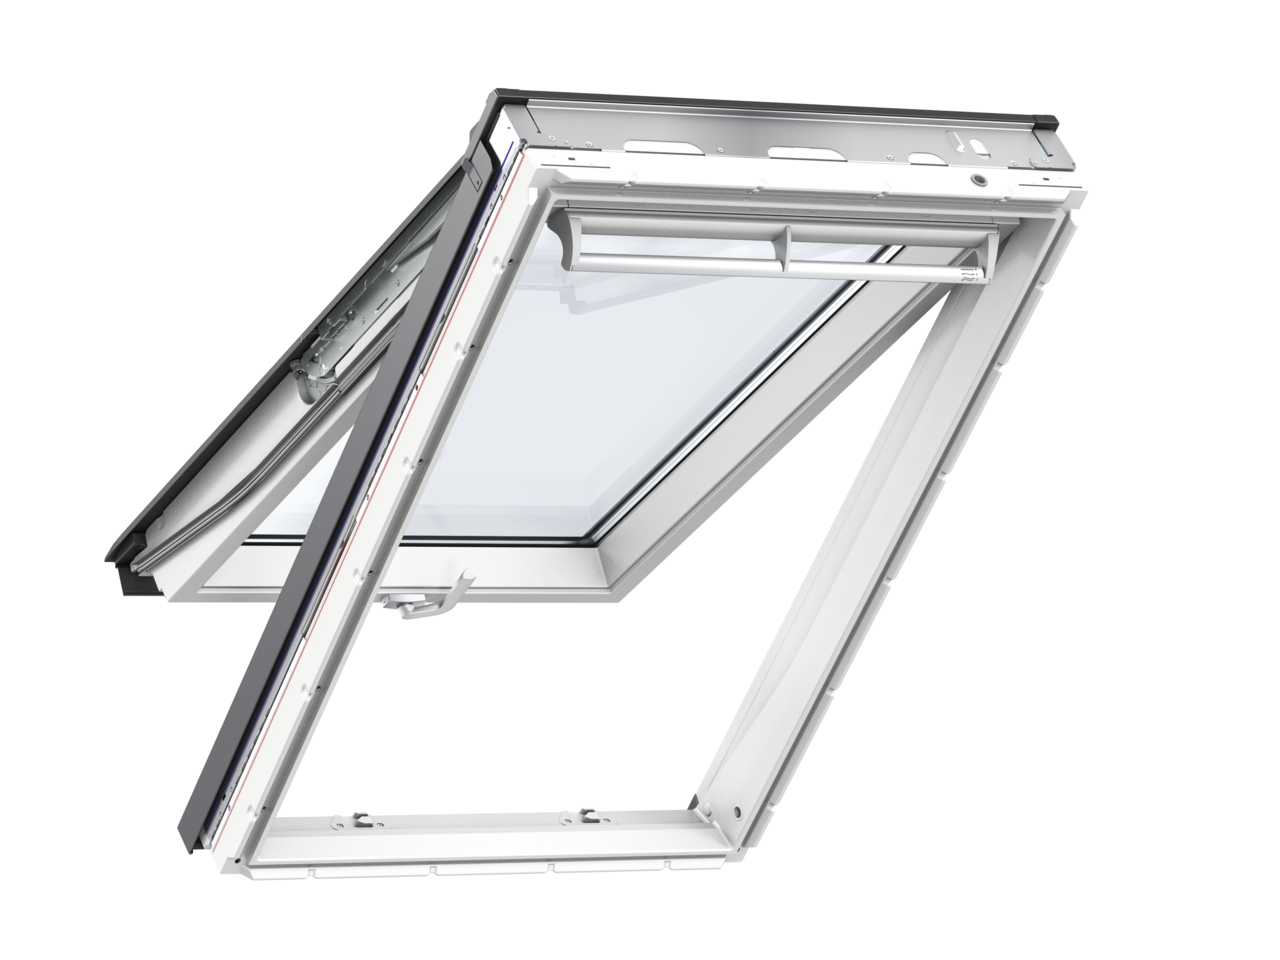 Velux GPU PK08 940 x 1400mm Top Hung 60Pane Roof Window - White Polyurethane